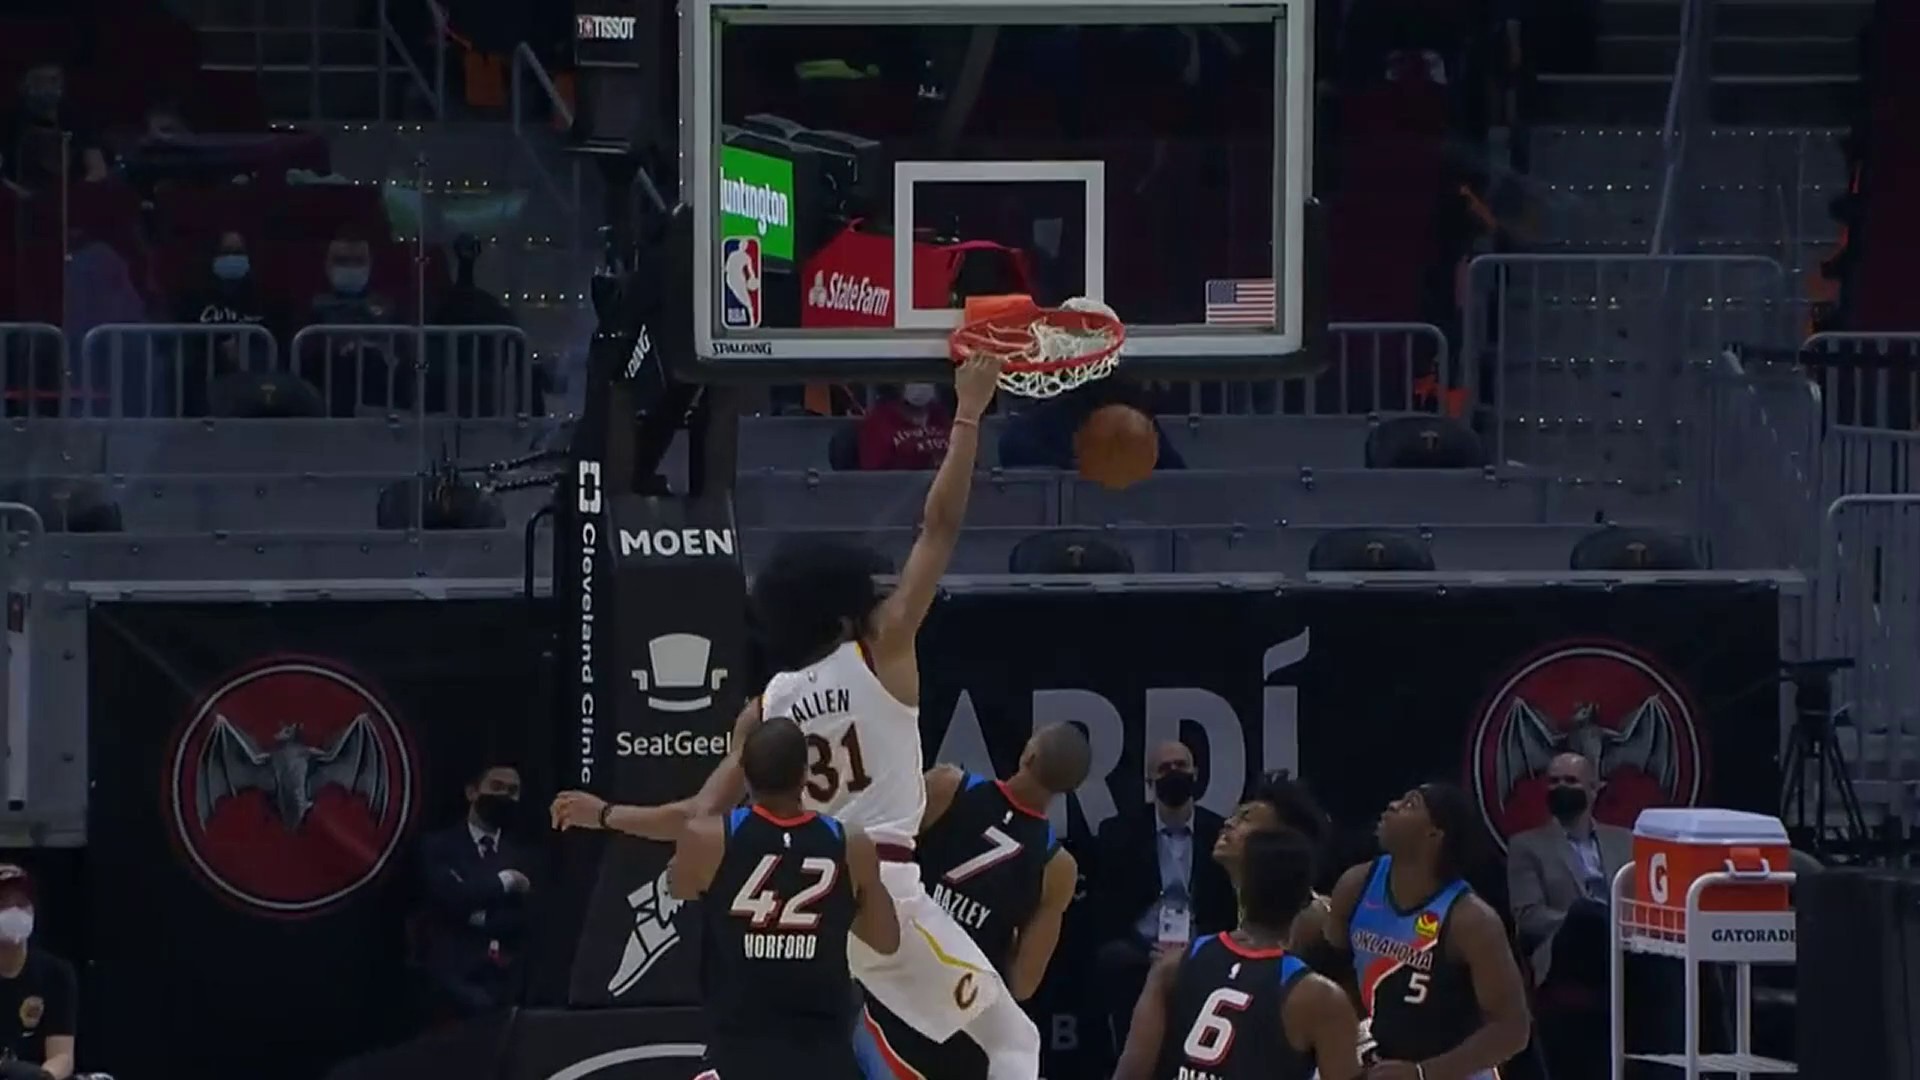 Sexton Finds Allen for the Dunk